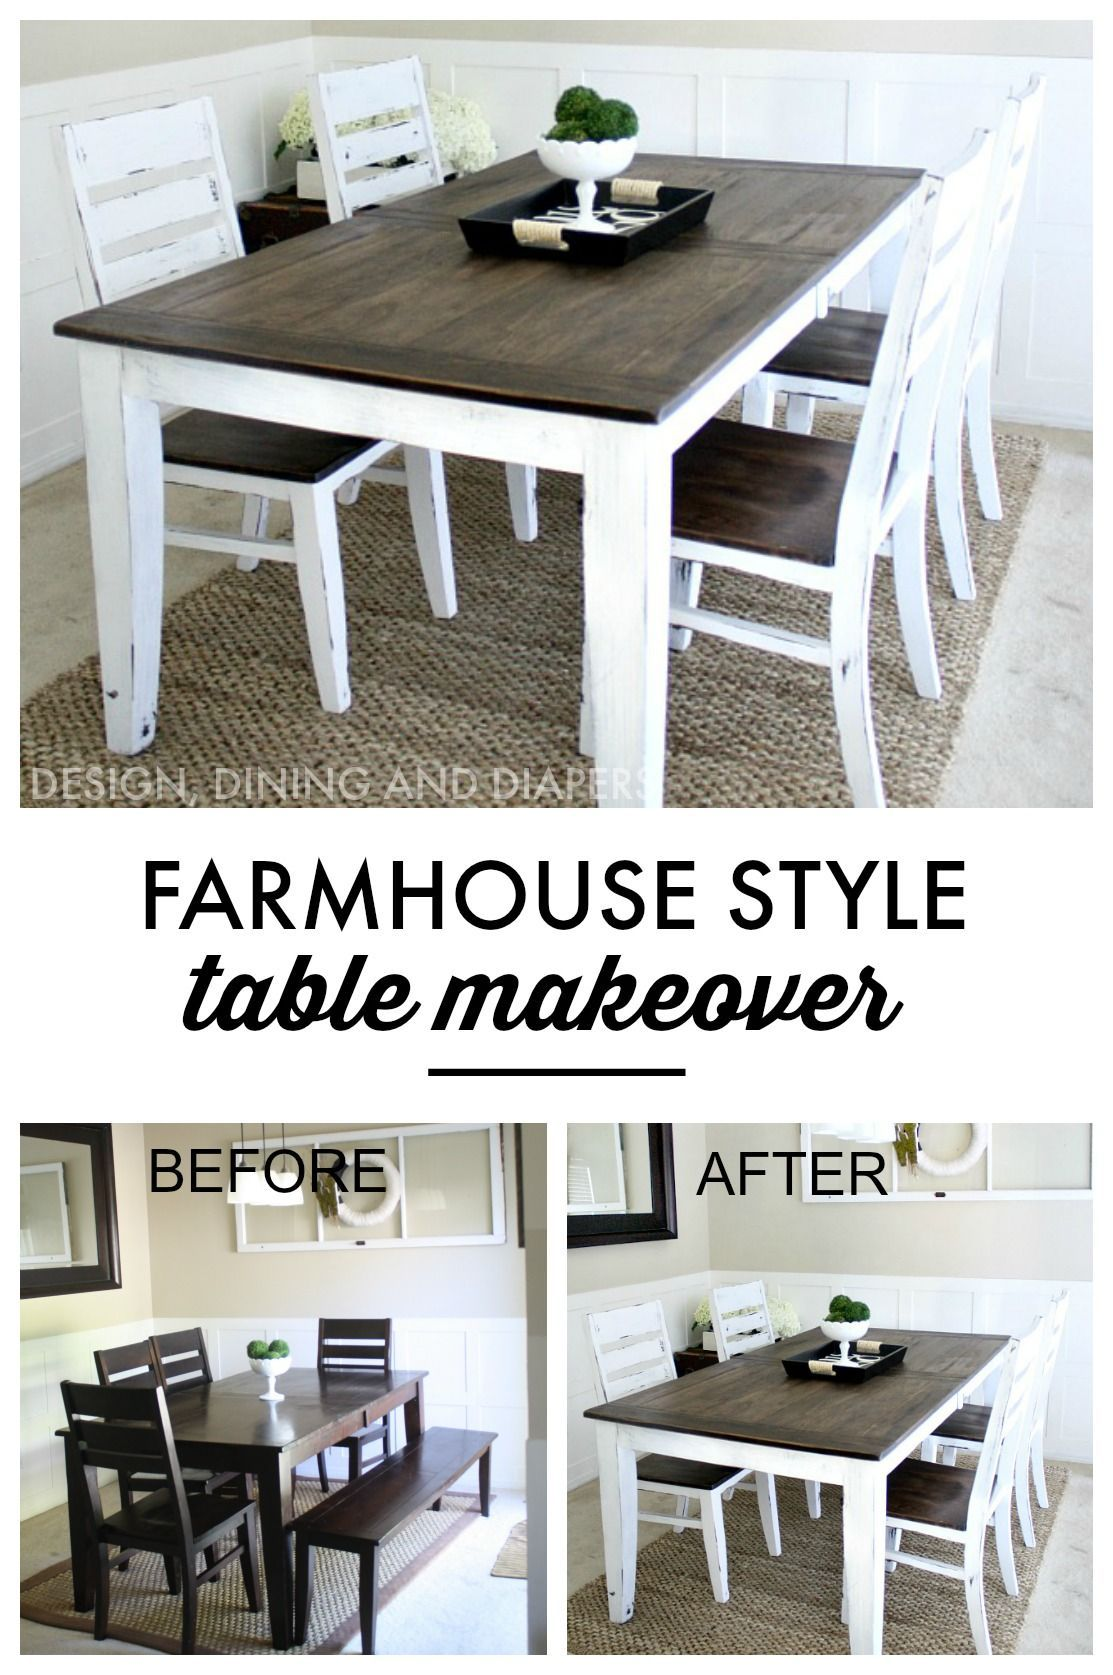 Image result for farm house tables and chairs makeover diy | Our ...